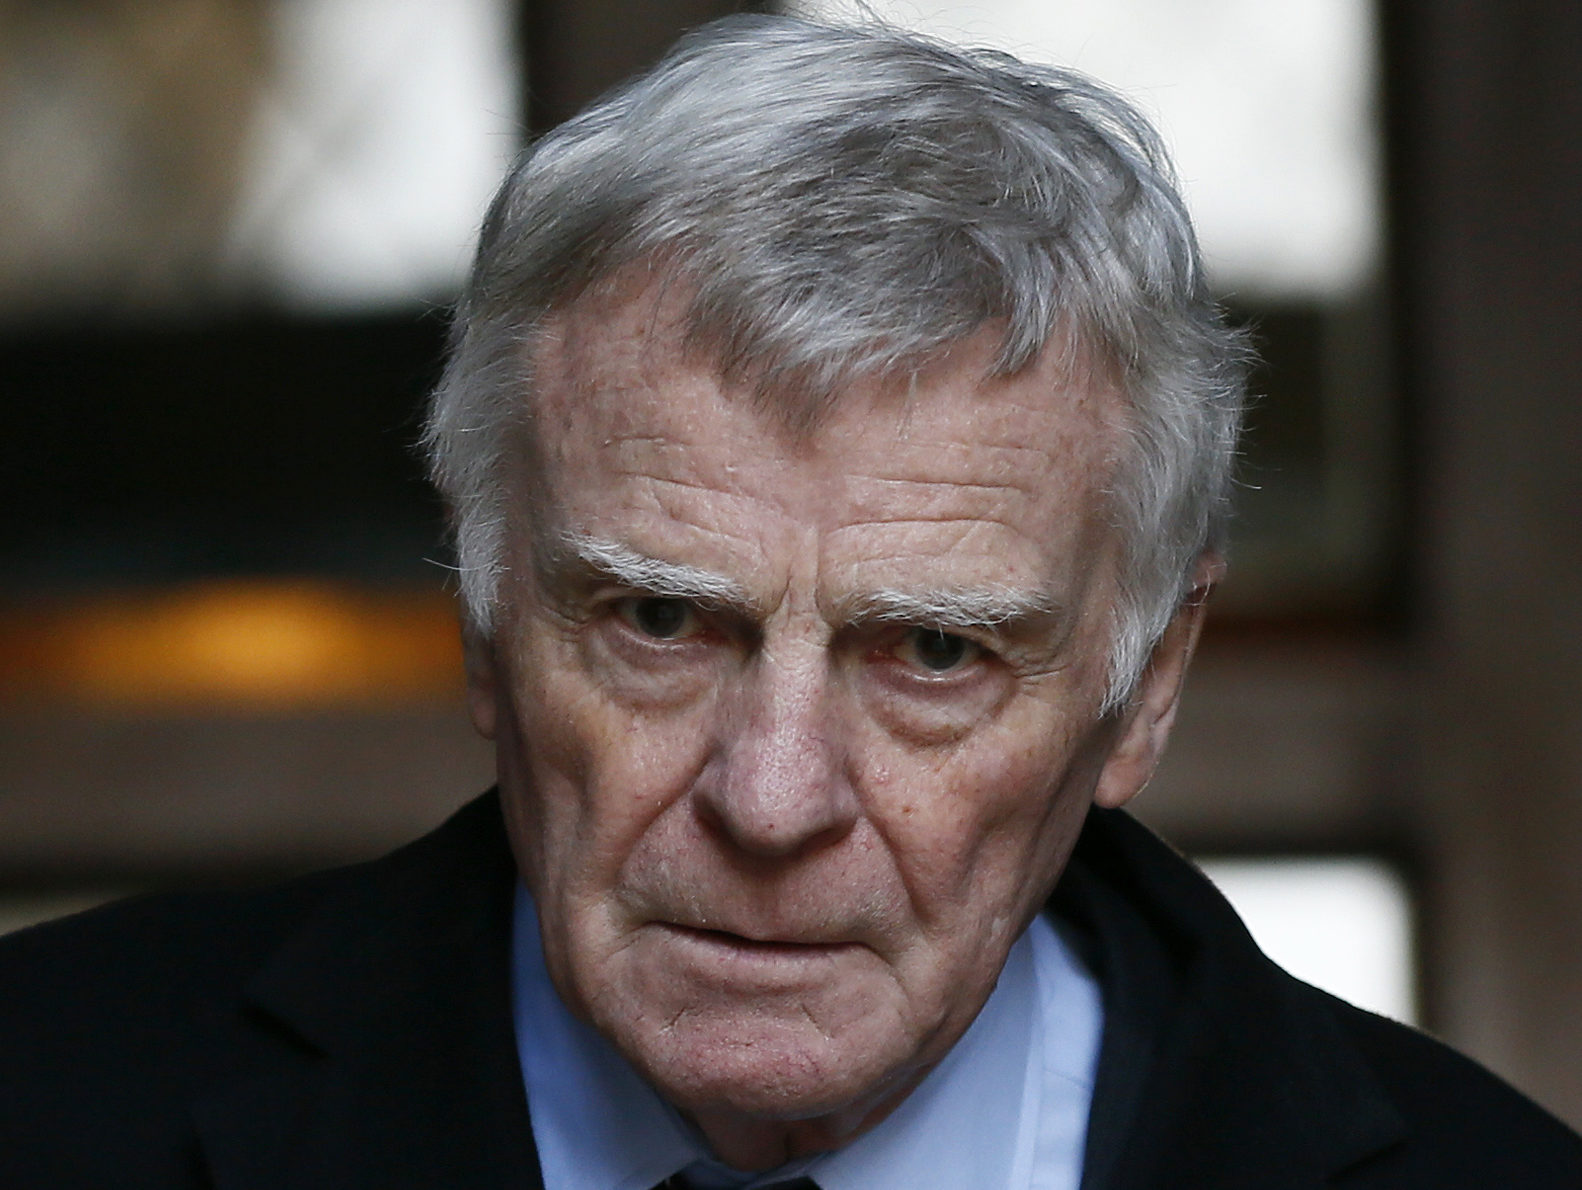 Labour says it will take no more cash from Max Mosley